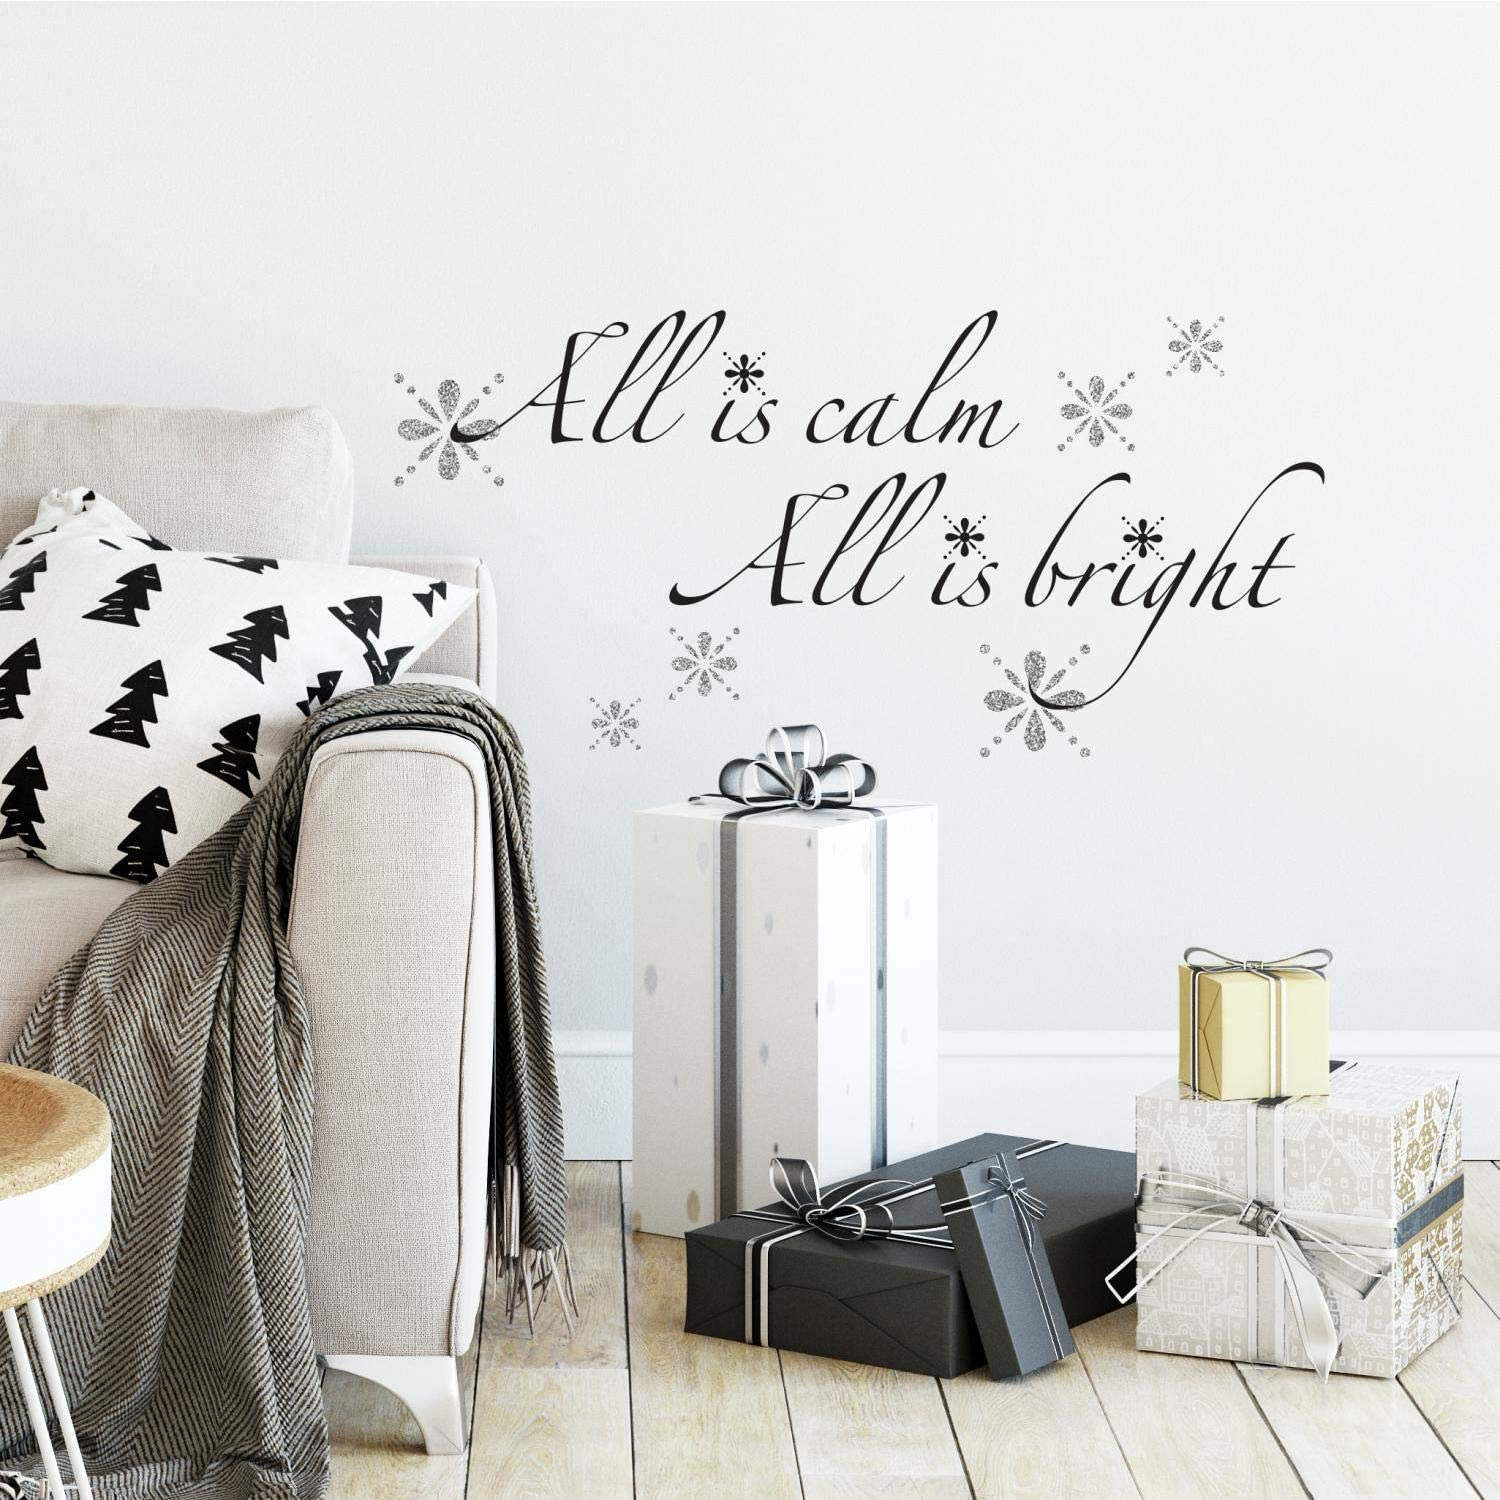 RoomMates All Is Calm, All Is Bright Quote Peel And Stick Wall Decals With Glitter